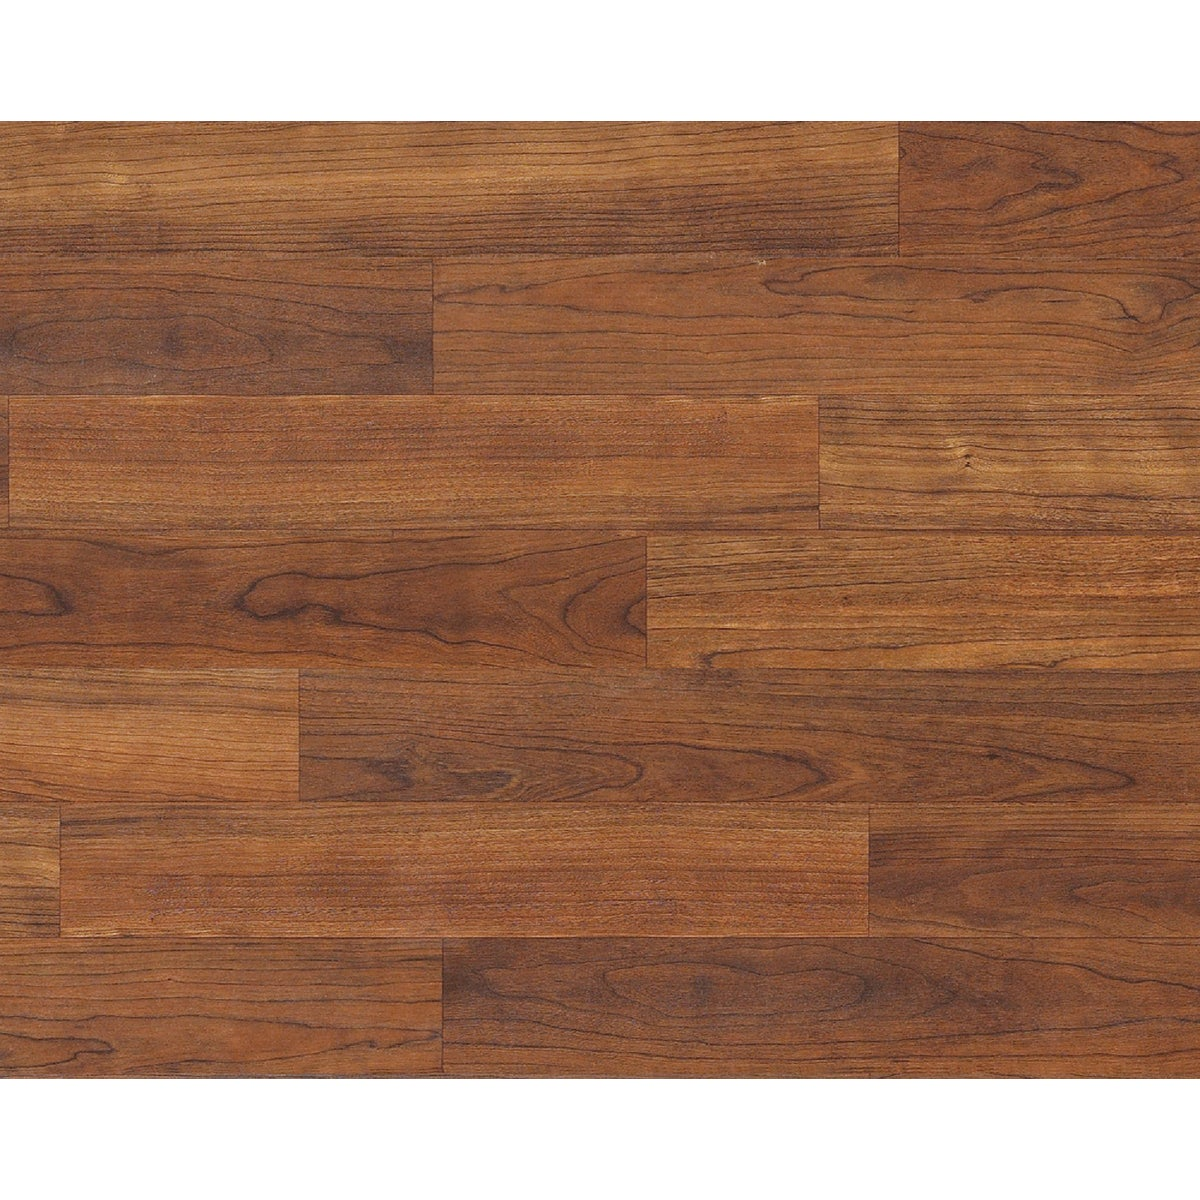 KC CHERRY LAMINATE FLOOR - SL25500839 by Shaw Industries